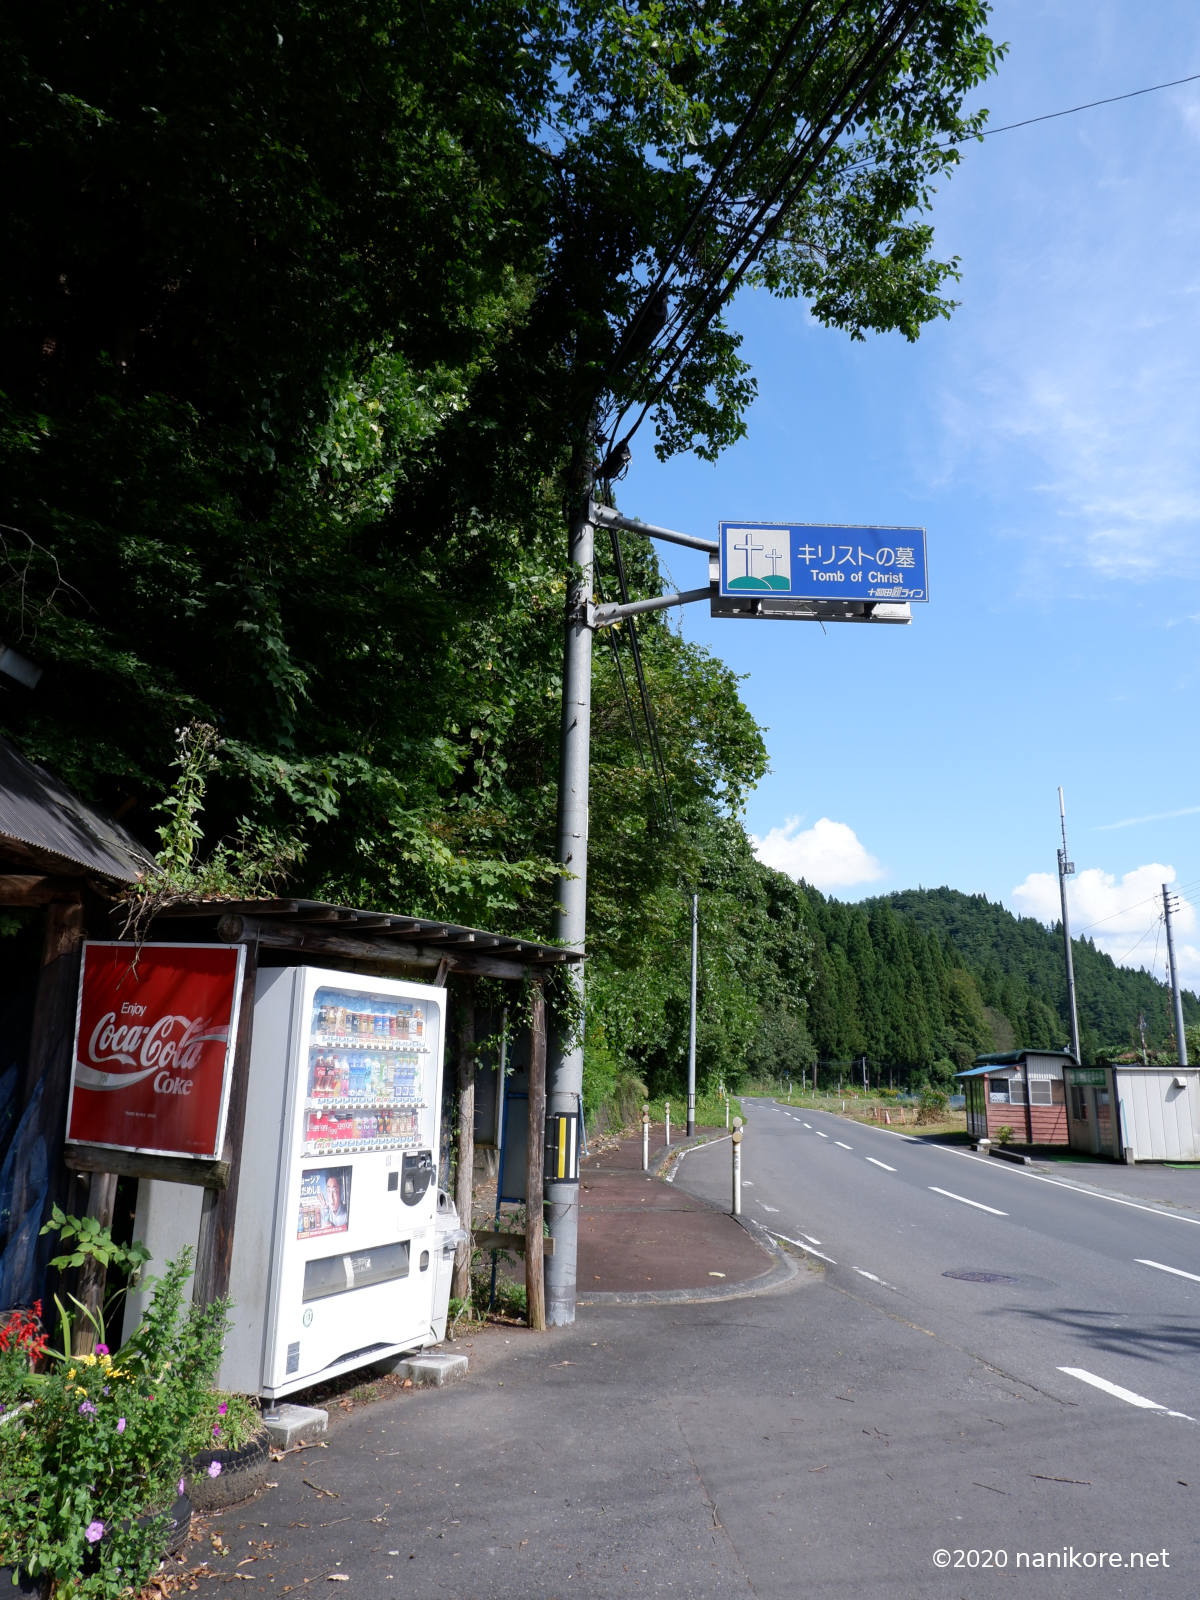 Roadside sign for the Tomb of Christ at Shingo